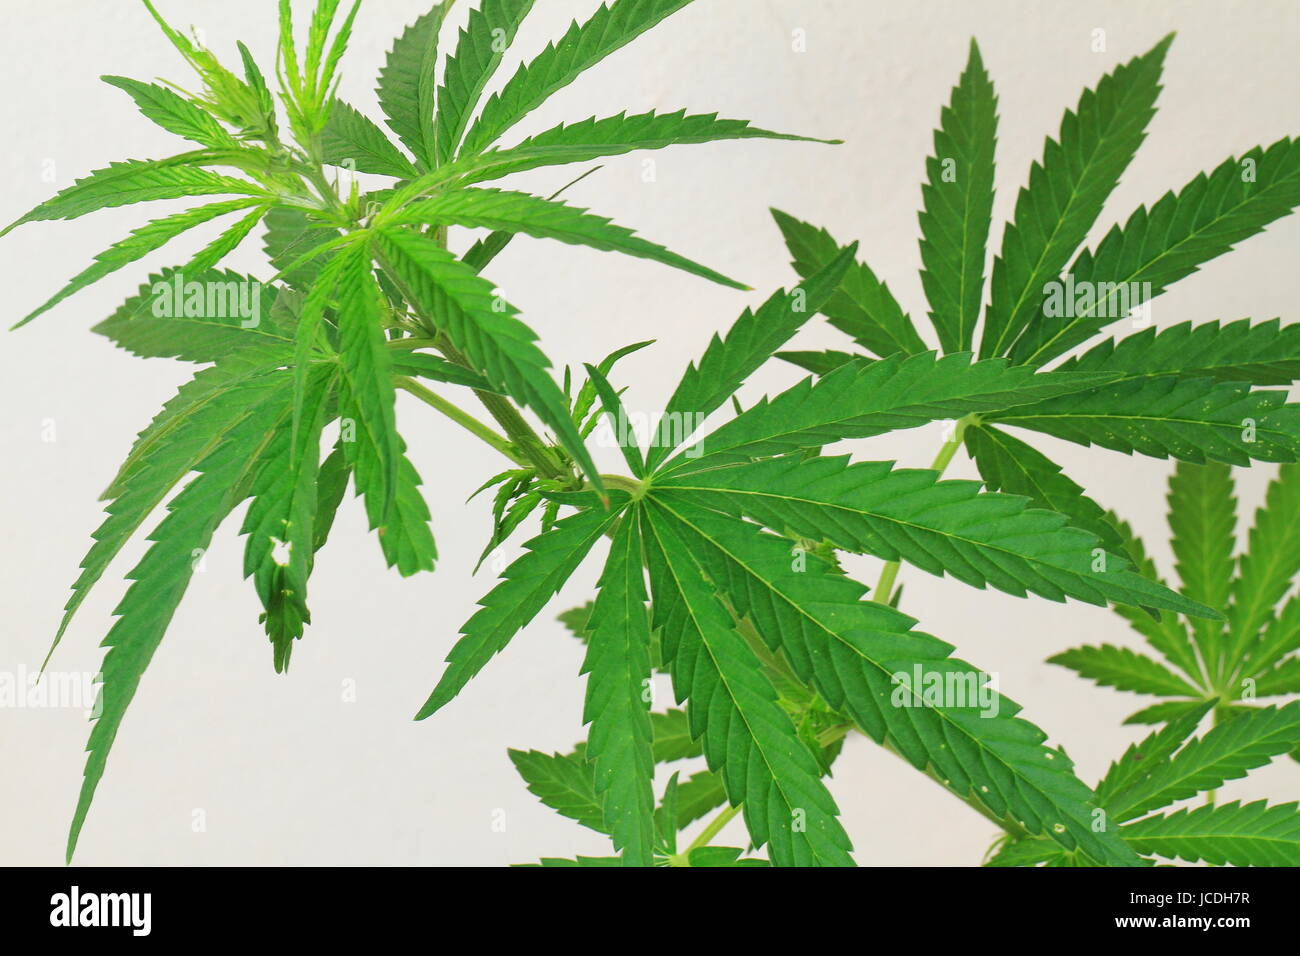 Cannanbis plant on an isolated background - Stock Image